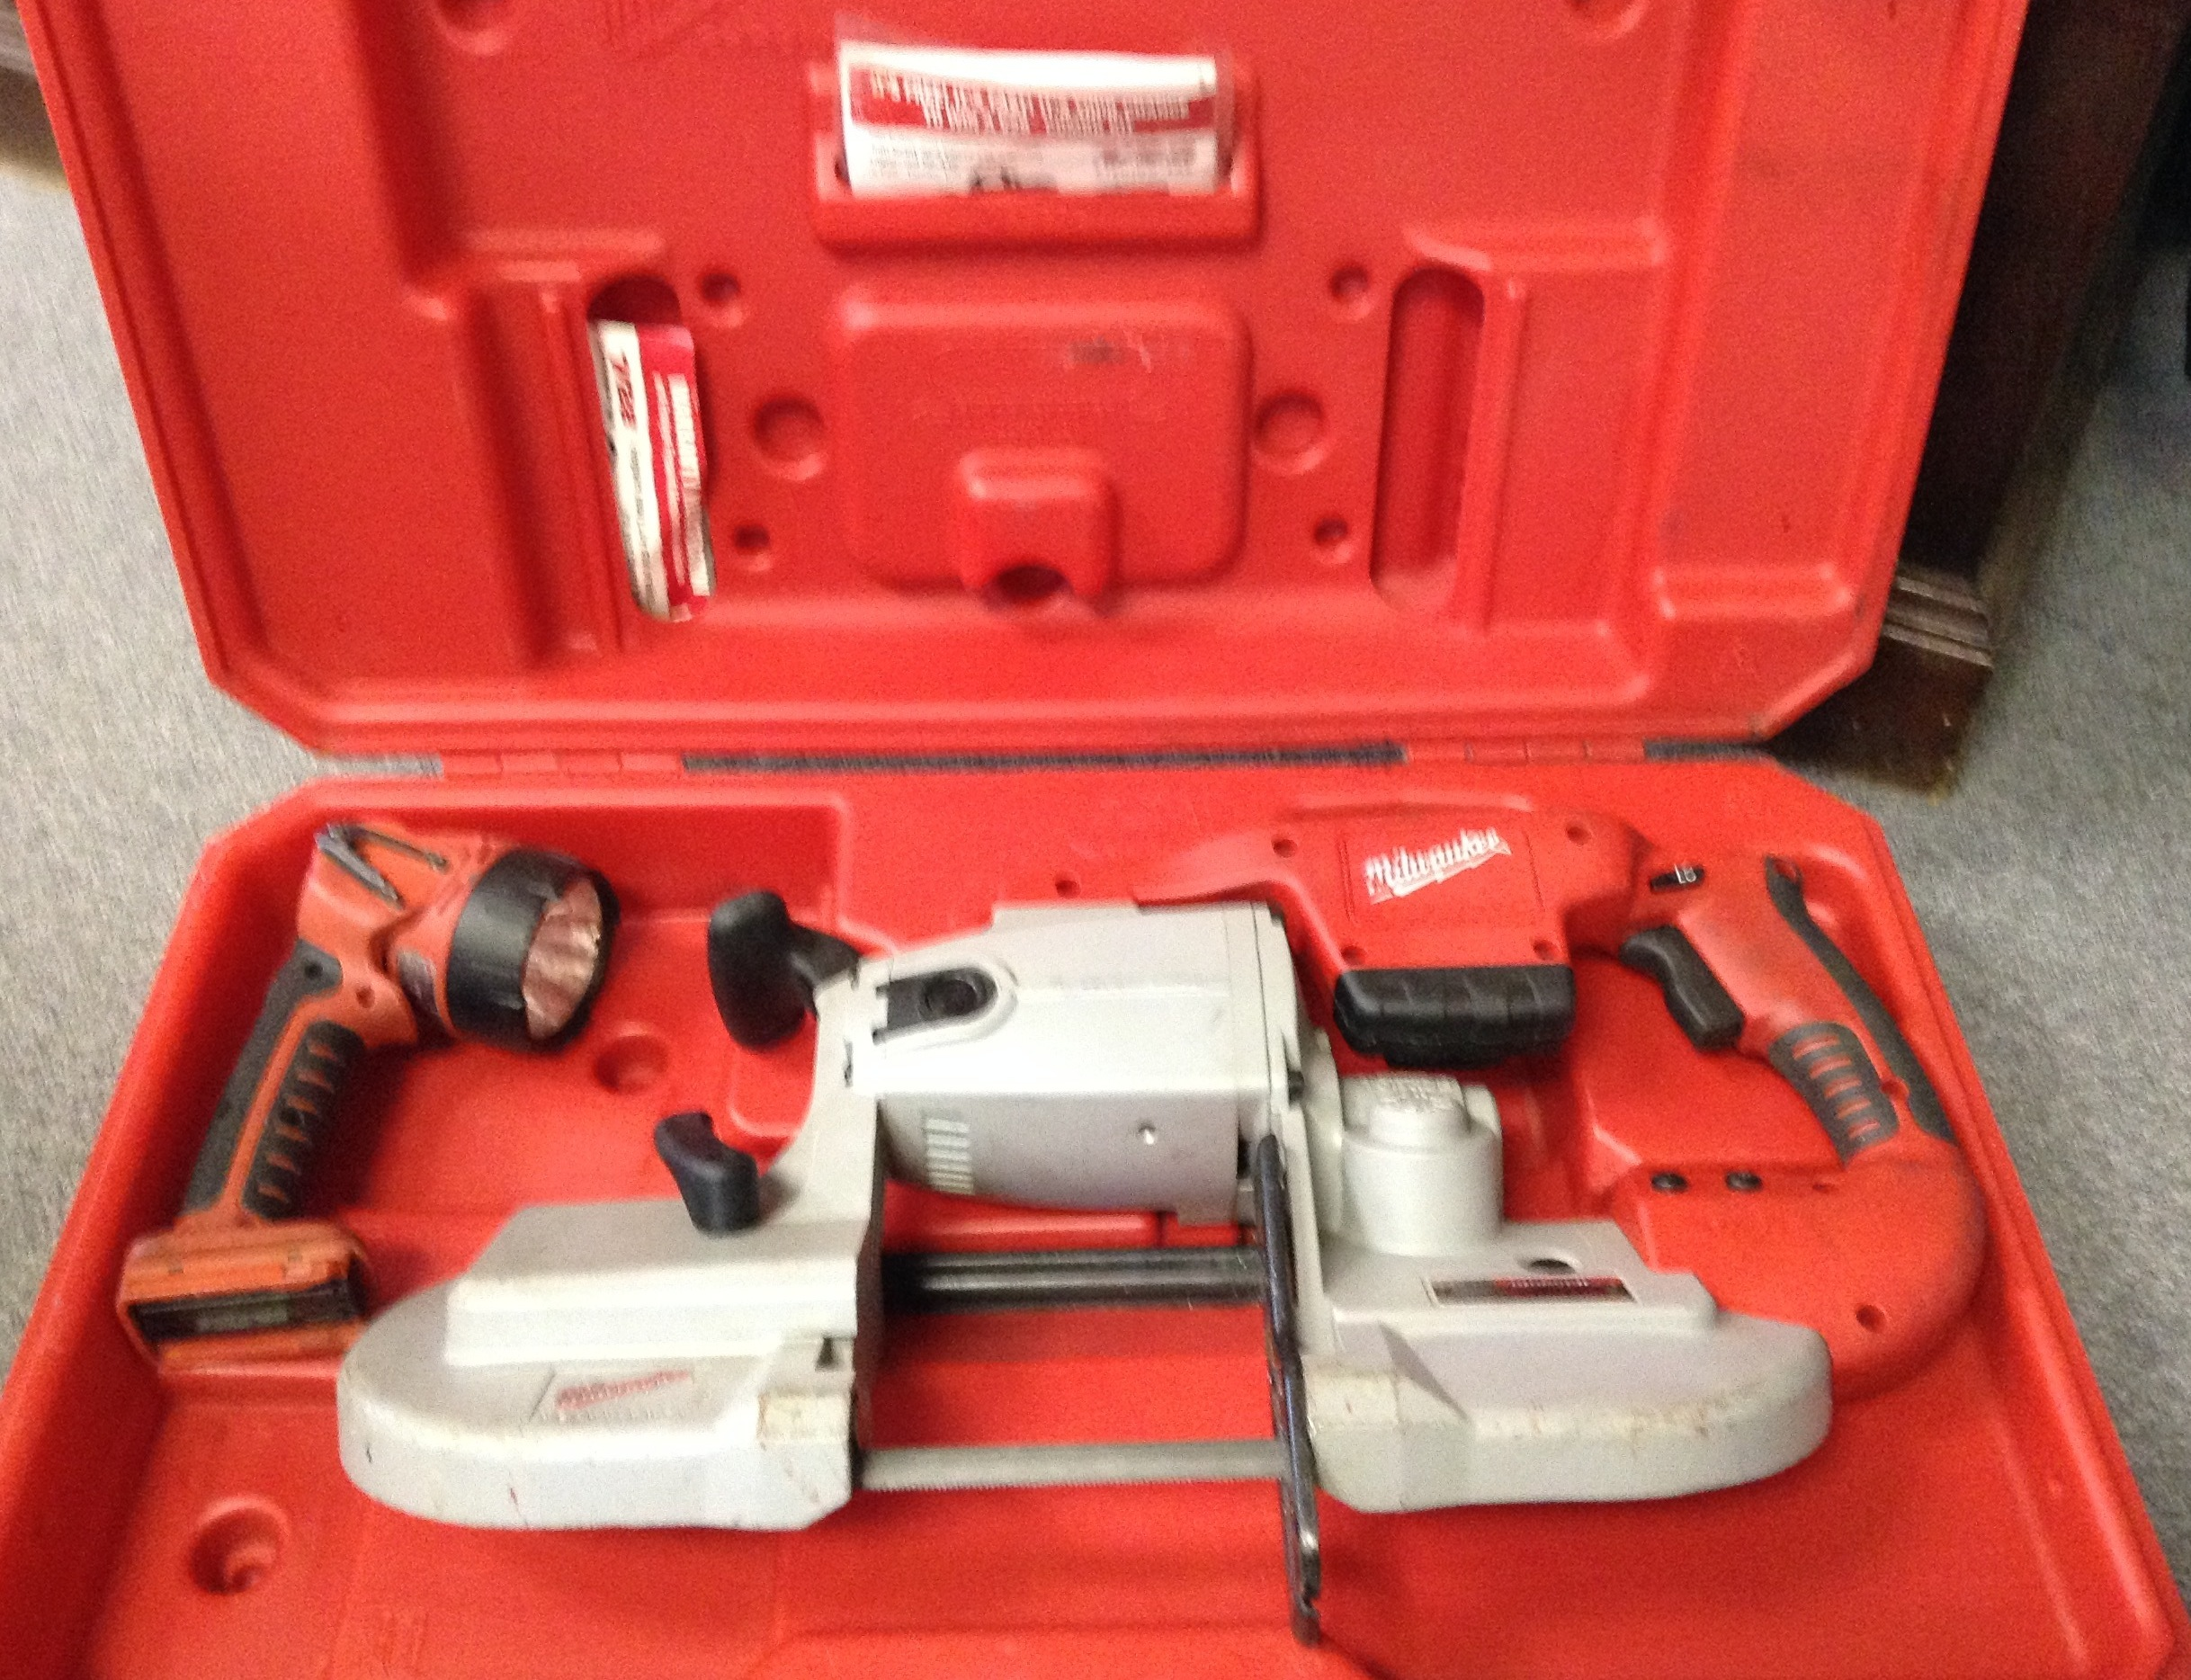 MILWAUKEE 0729-20 BAND SAW W/ WORK LIGHT (TOOLS ONLY)